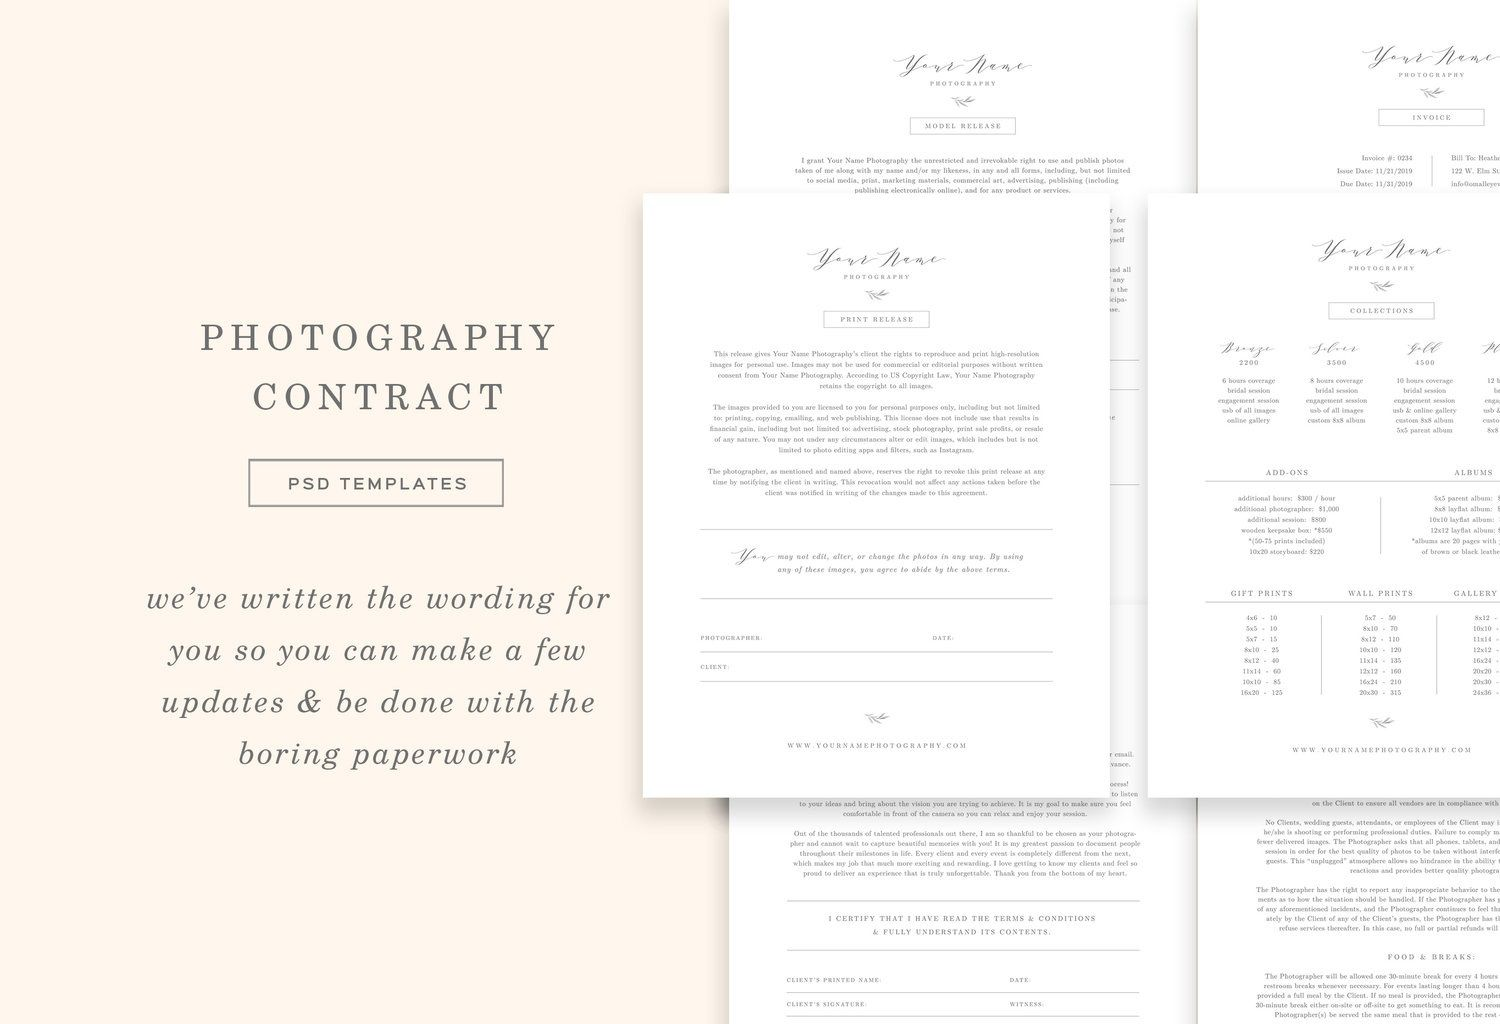 009 Astounding Wedding Photography Contract Template Canada High Resolution Full